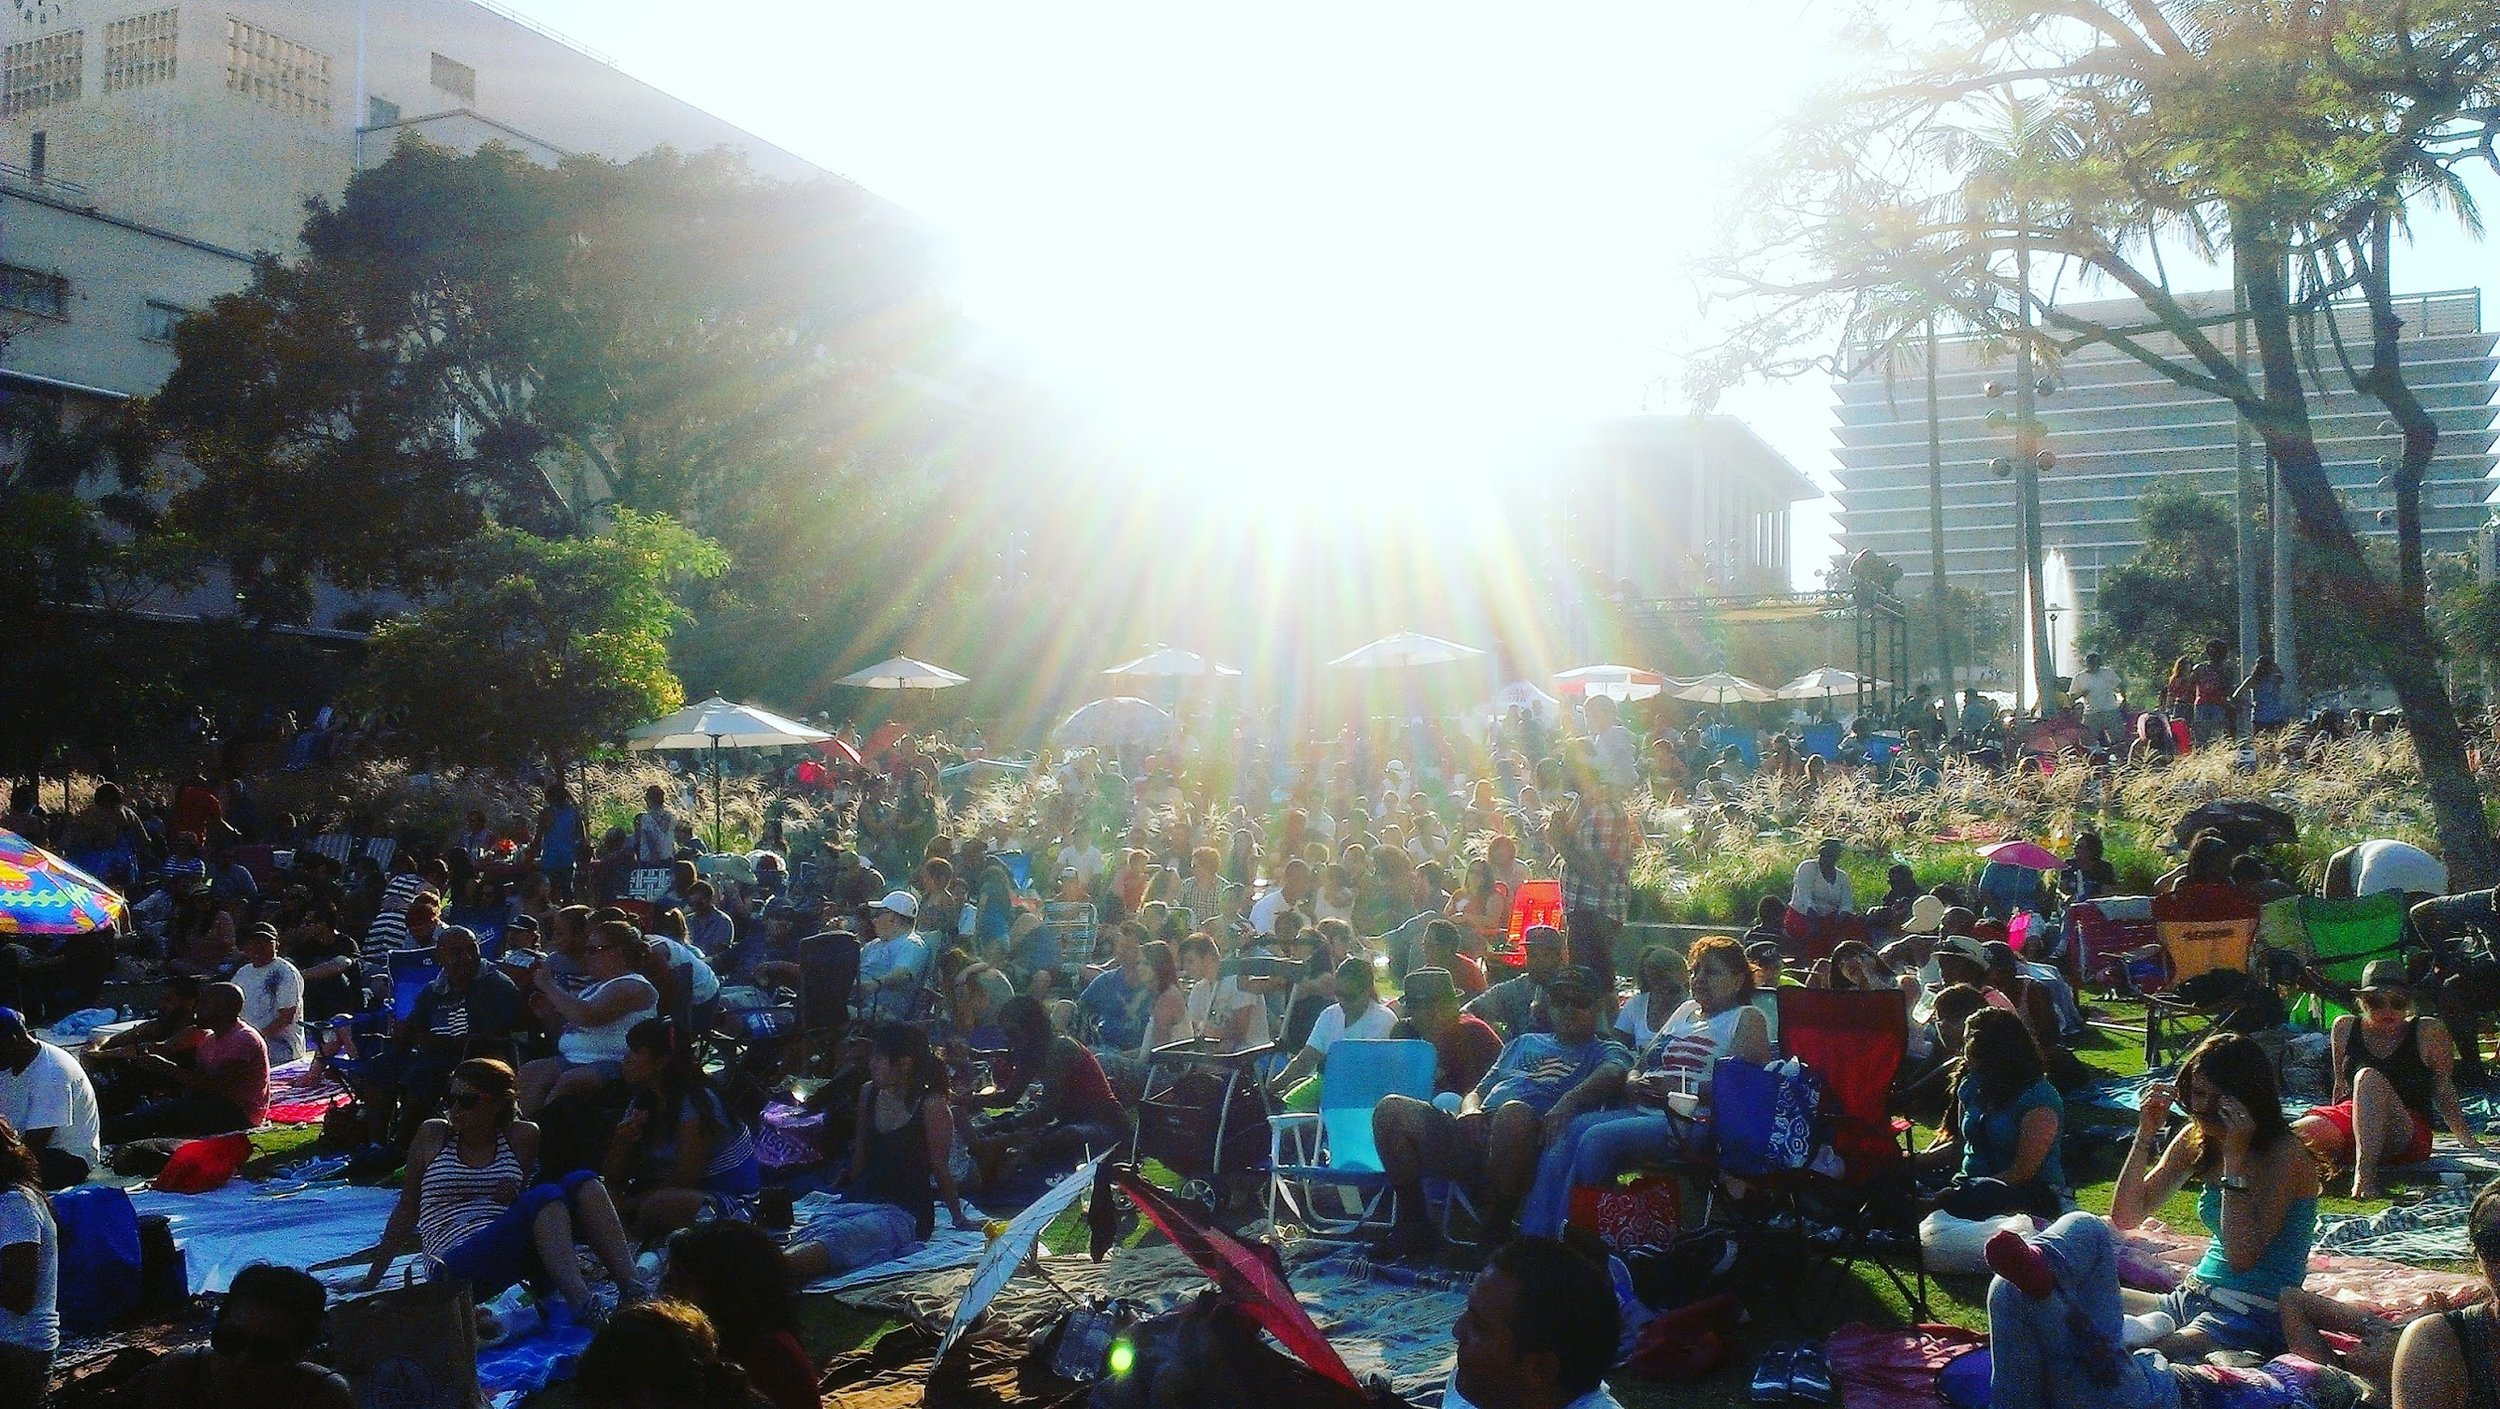 A summer music festival at Grand Park in Los Angeles, CA.